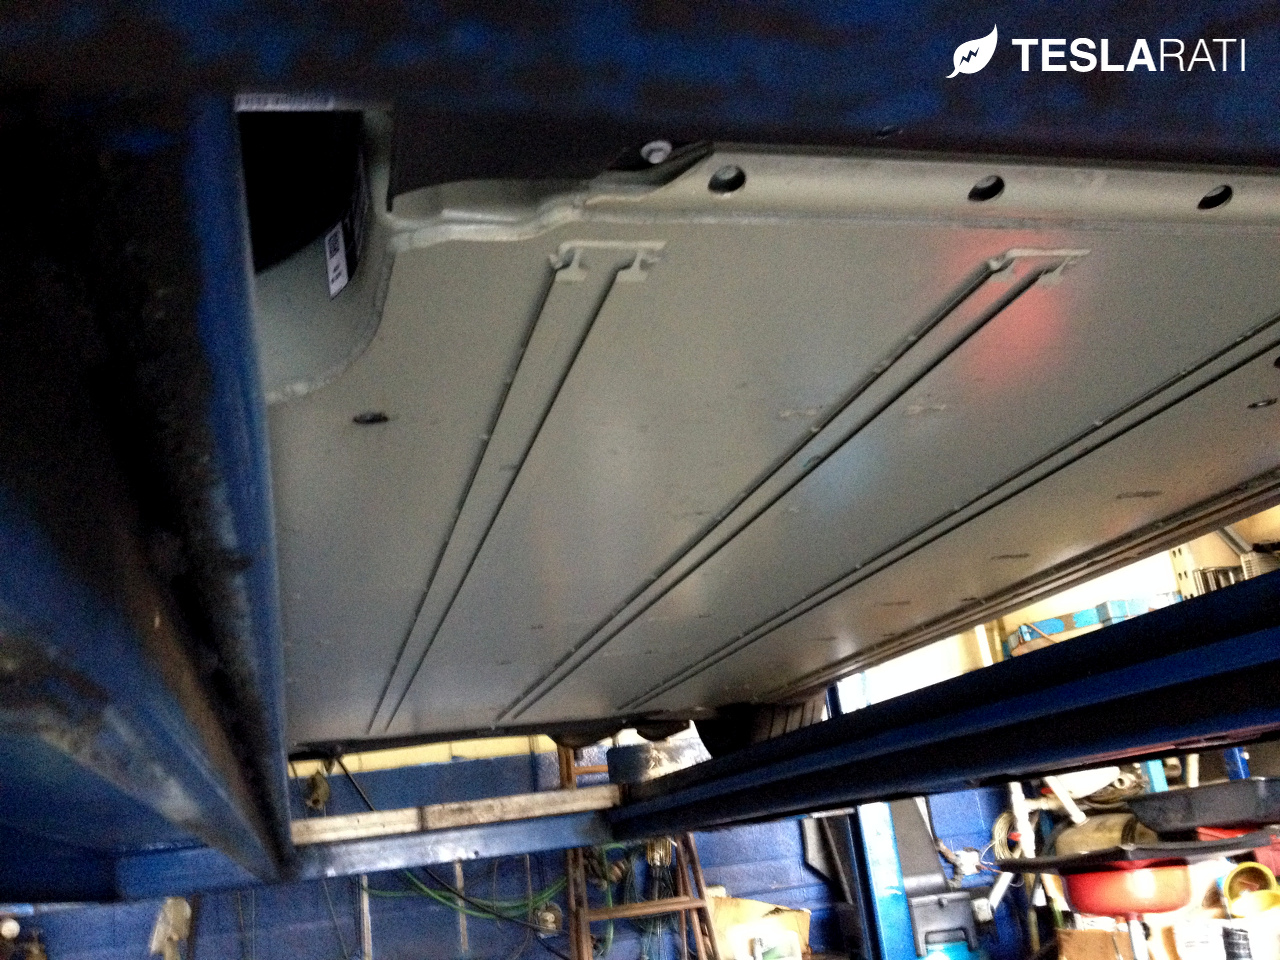 Teslarati-Model-S-Battery-Shield-RD-2